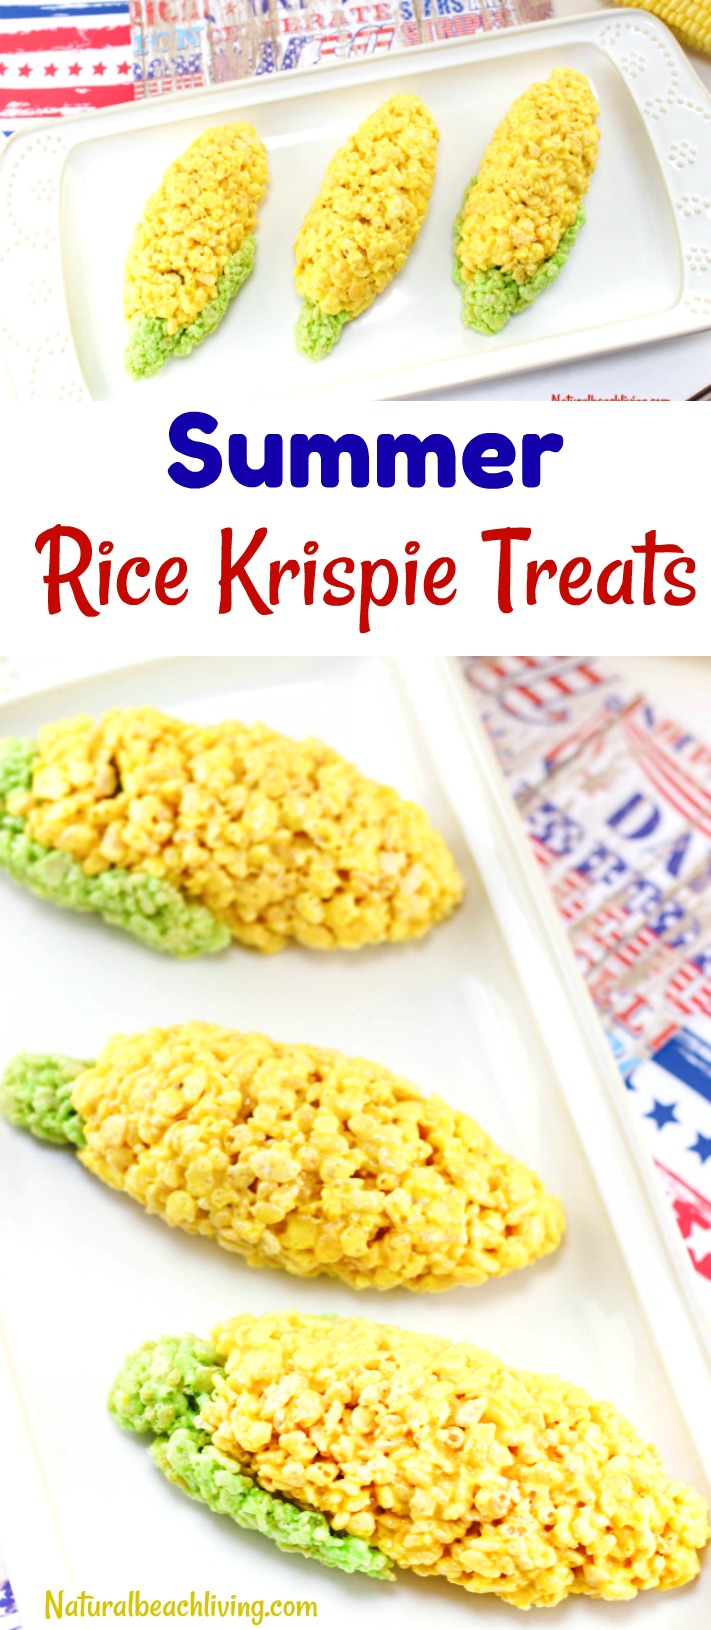 How to Make a Summer Rice Krispie Treat Recipe Everyone will Love, Corn on the Cob Rice Krispy treats, Summer Recipe, Easy Snack for Kids, Party food, YUM!